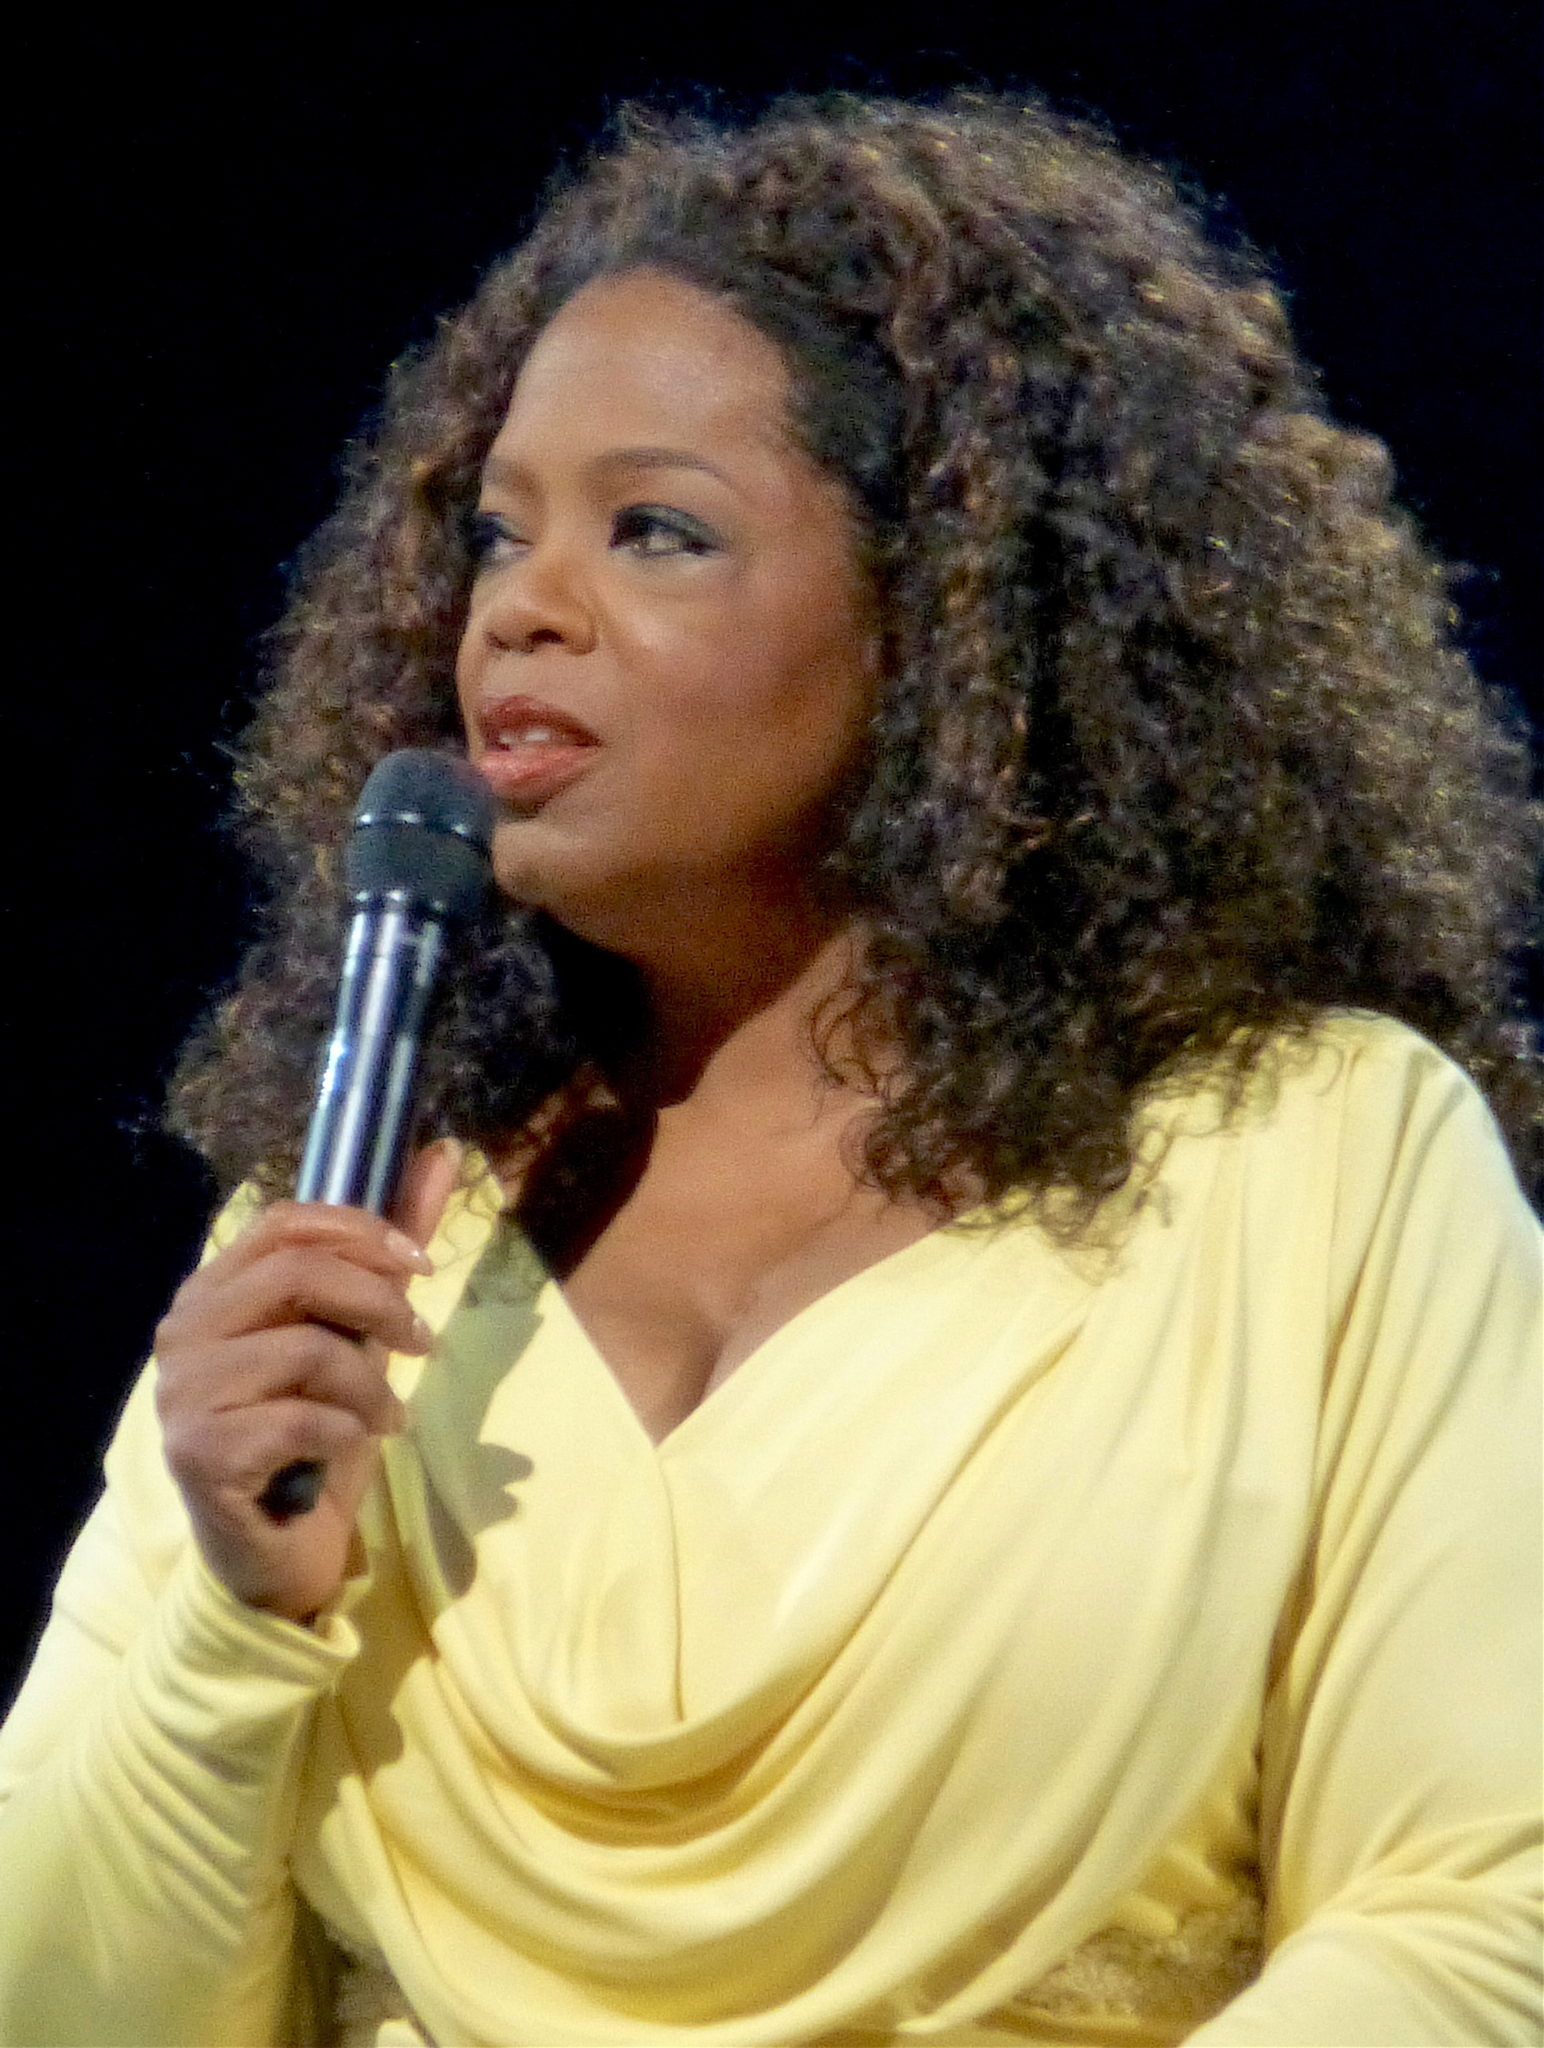 If Yang Meets Oprah, What Then?